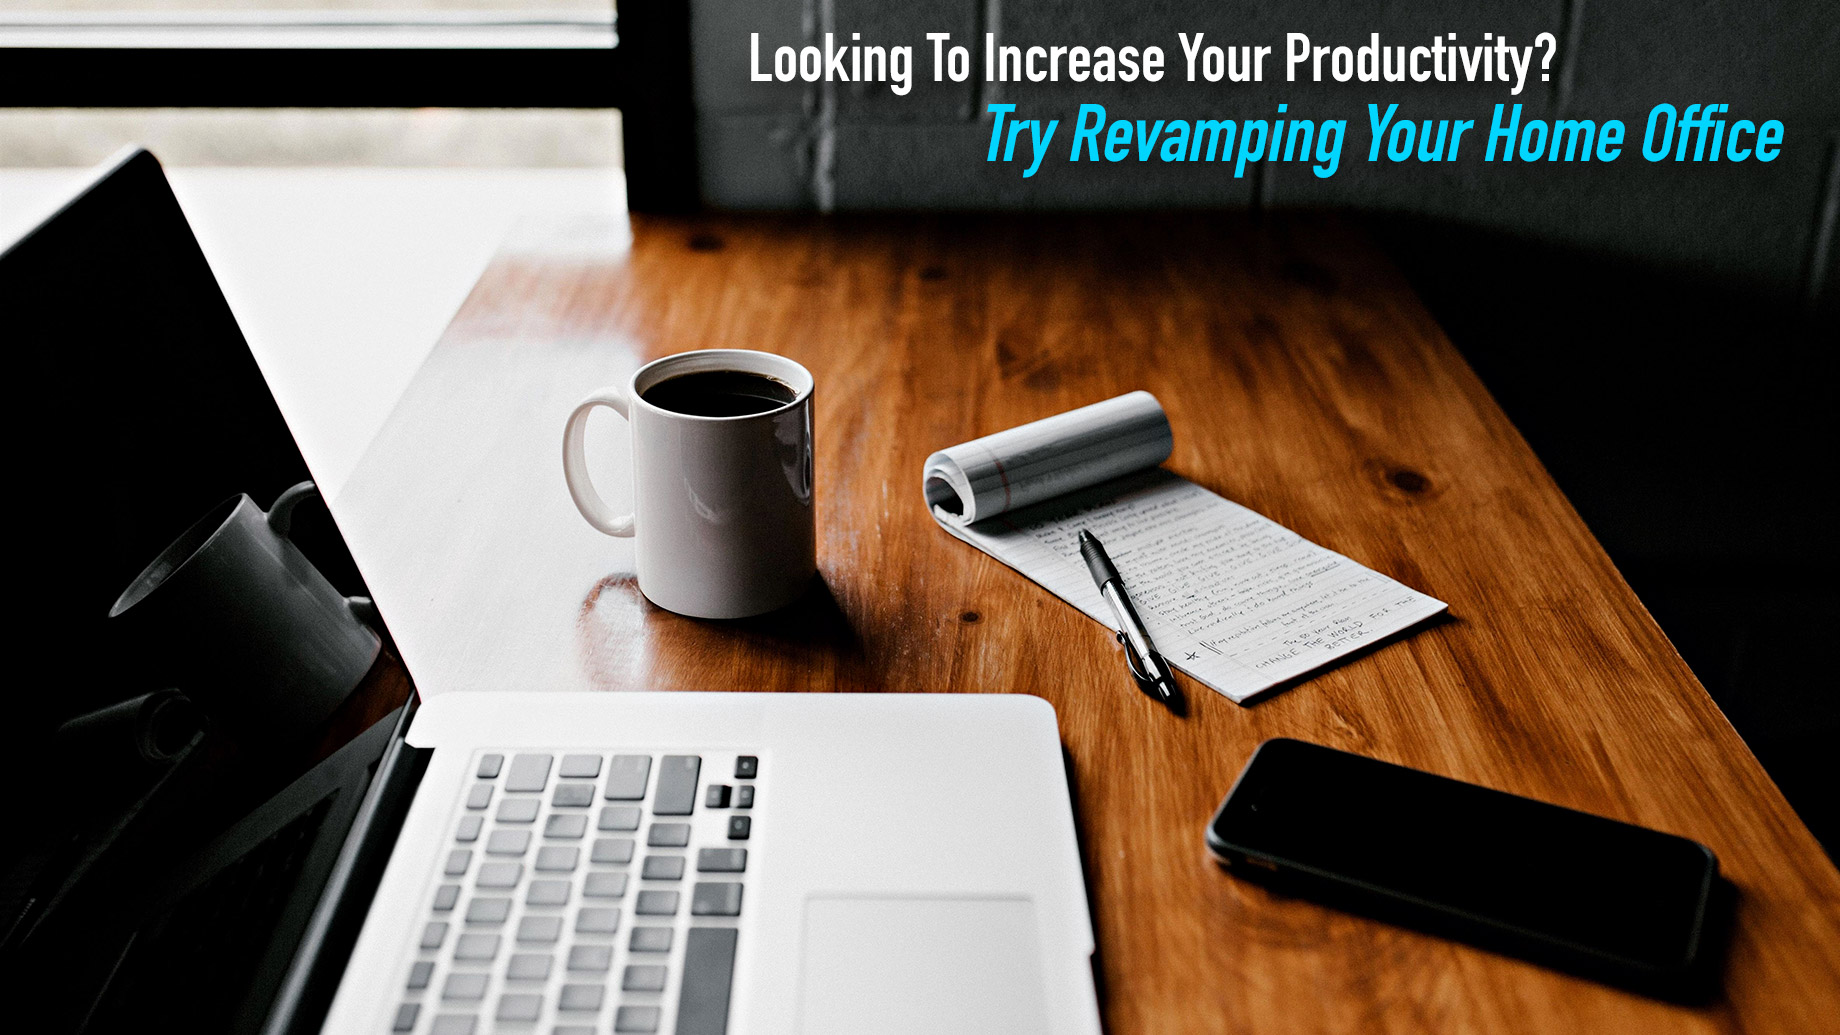 Looking To Increase Your Productivity? Try Revamping Your Home Office